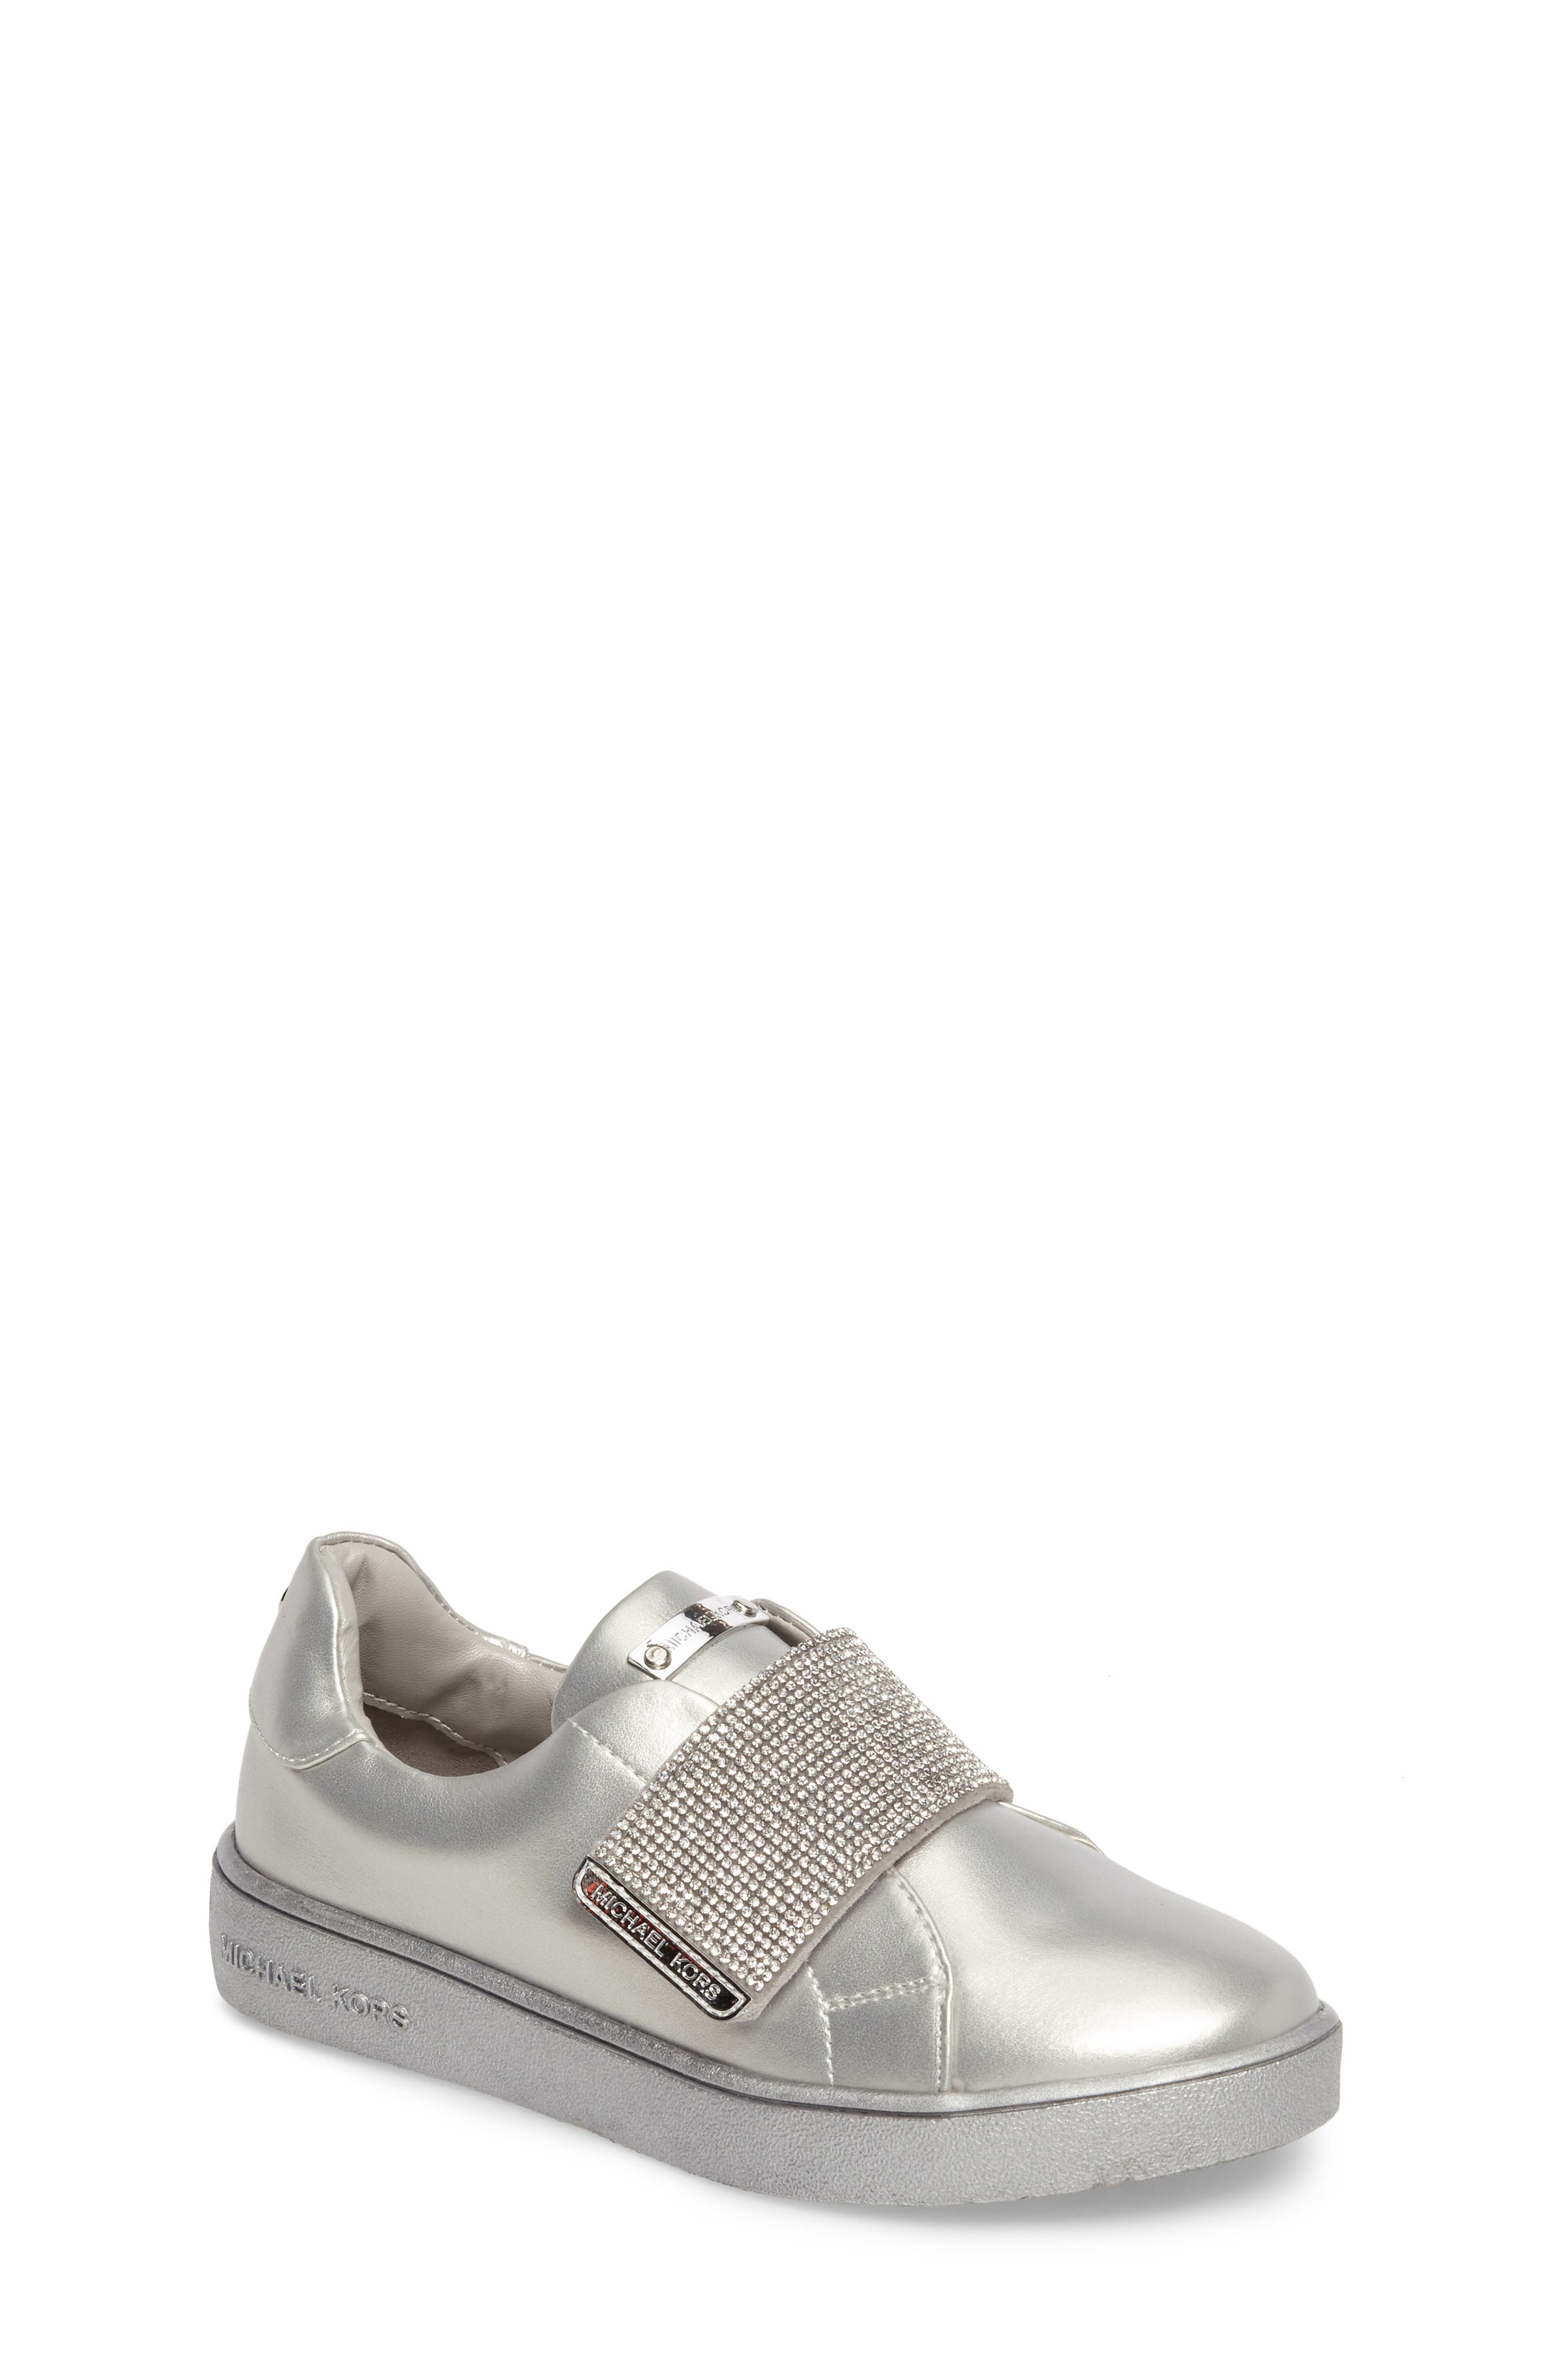 Ivy Candy Sneaker,                             Main thumbnail 1, color,